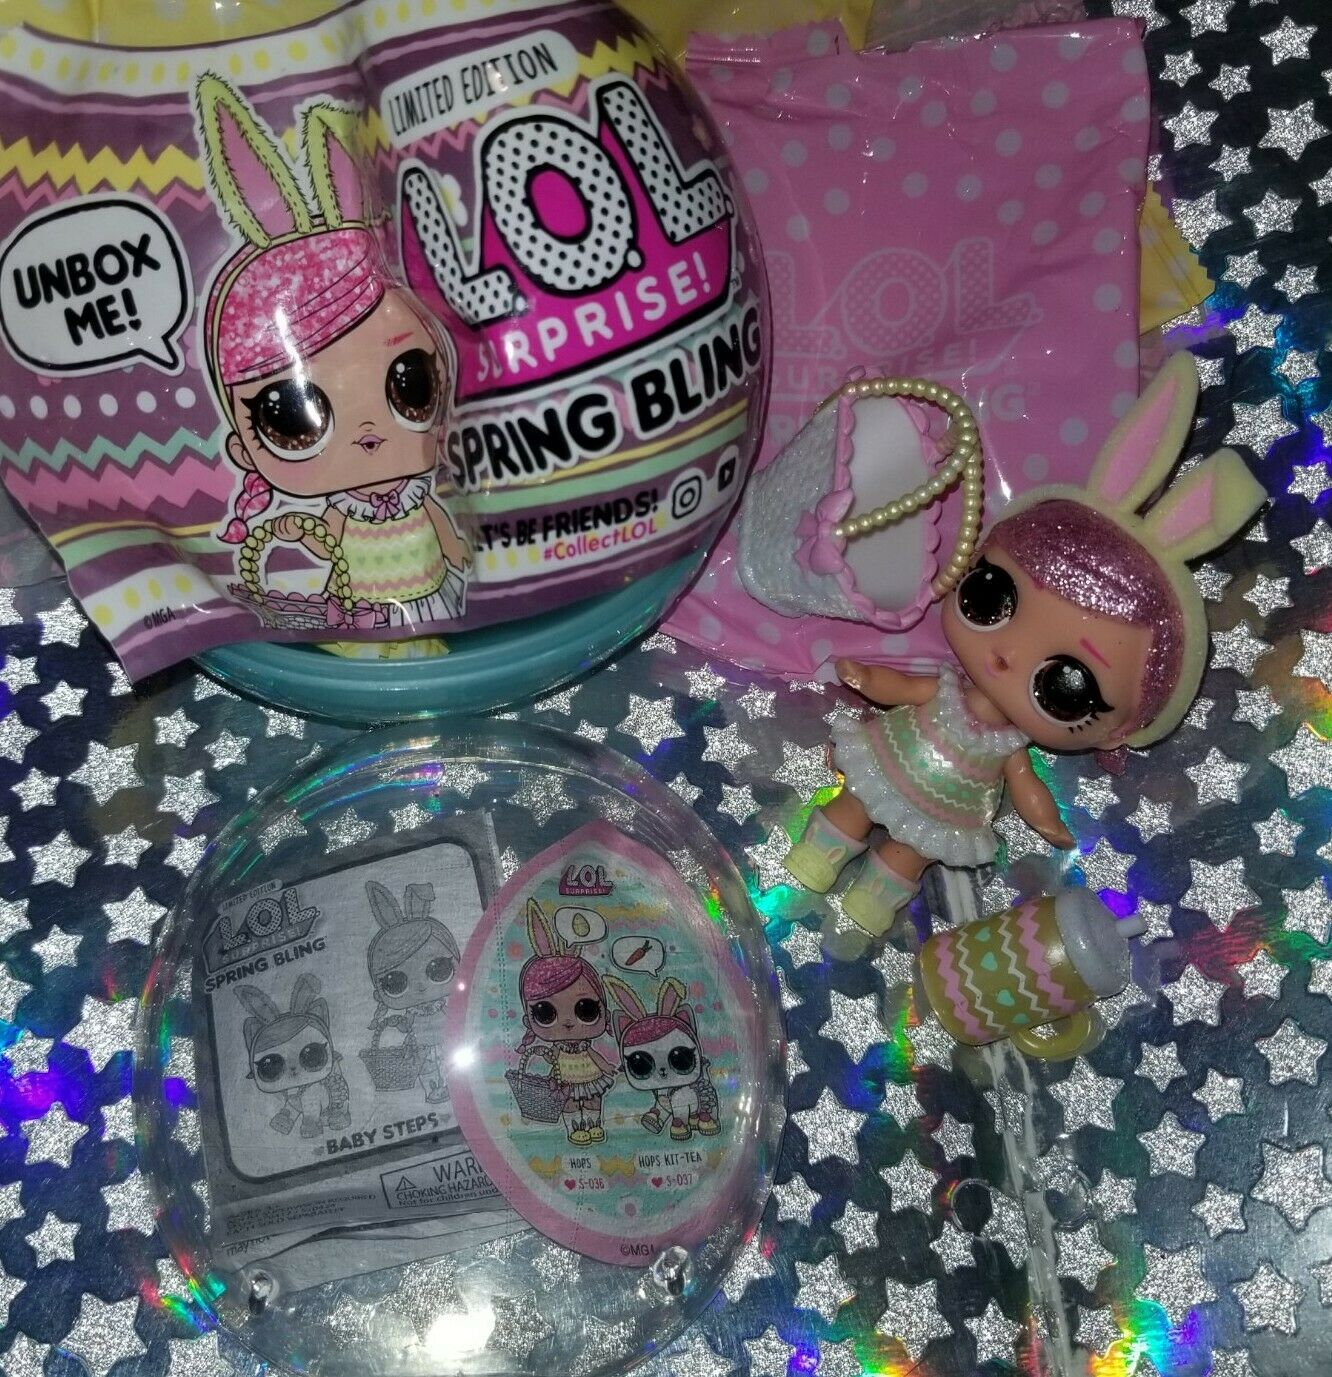 Model:570417 Multicolor L.O.L Surprise Spring Bling Limited Edition Doll with 7 Surprises